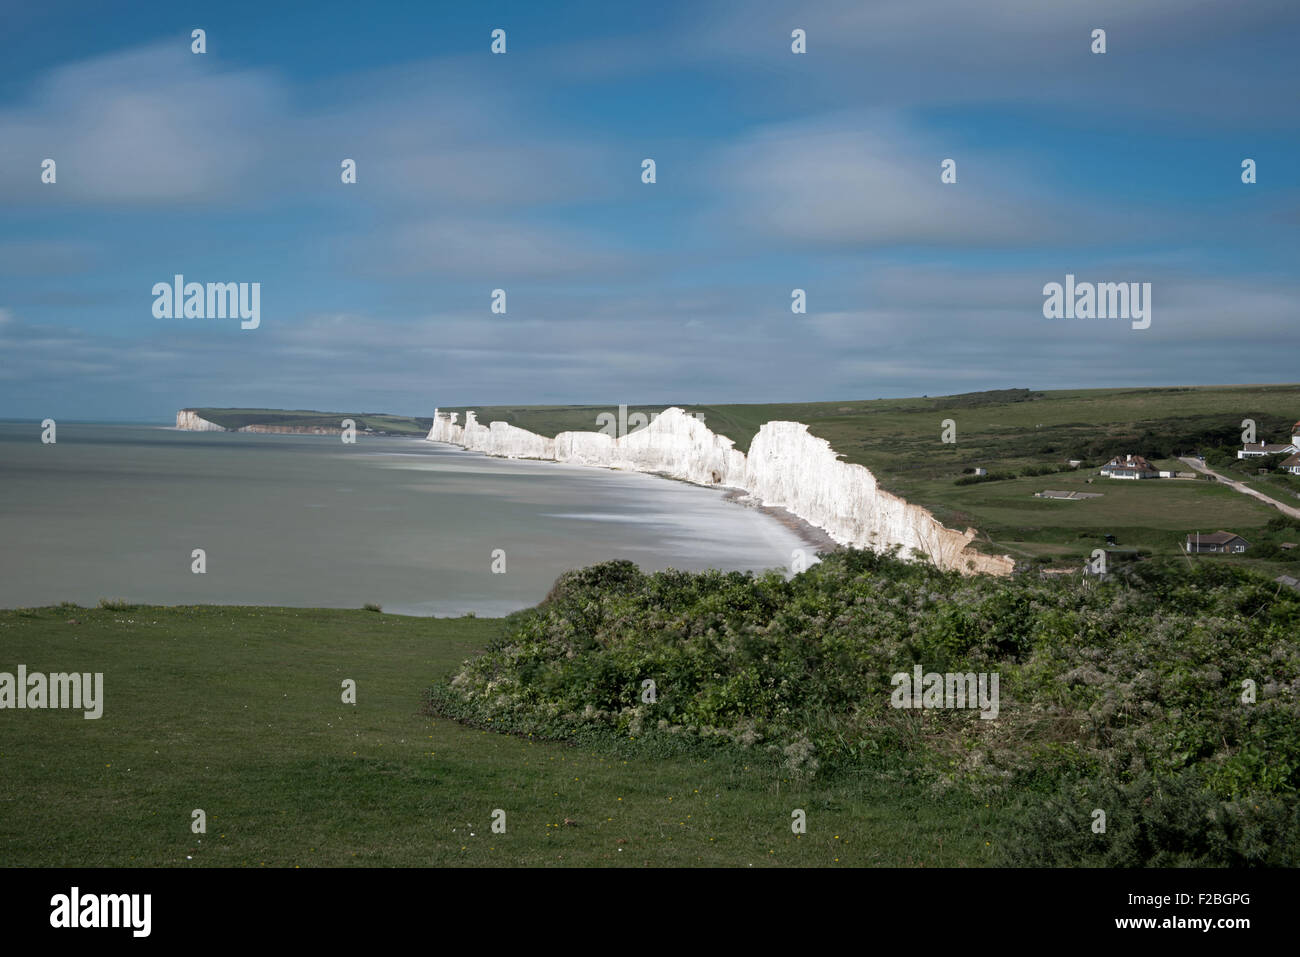 View towards The Seven Sisters Cliffs,  from  Birling Gap, South Downs National Park, East Sussex, England, Uk, Stock Photo